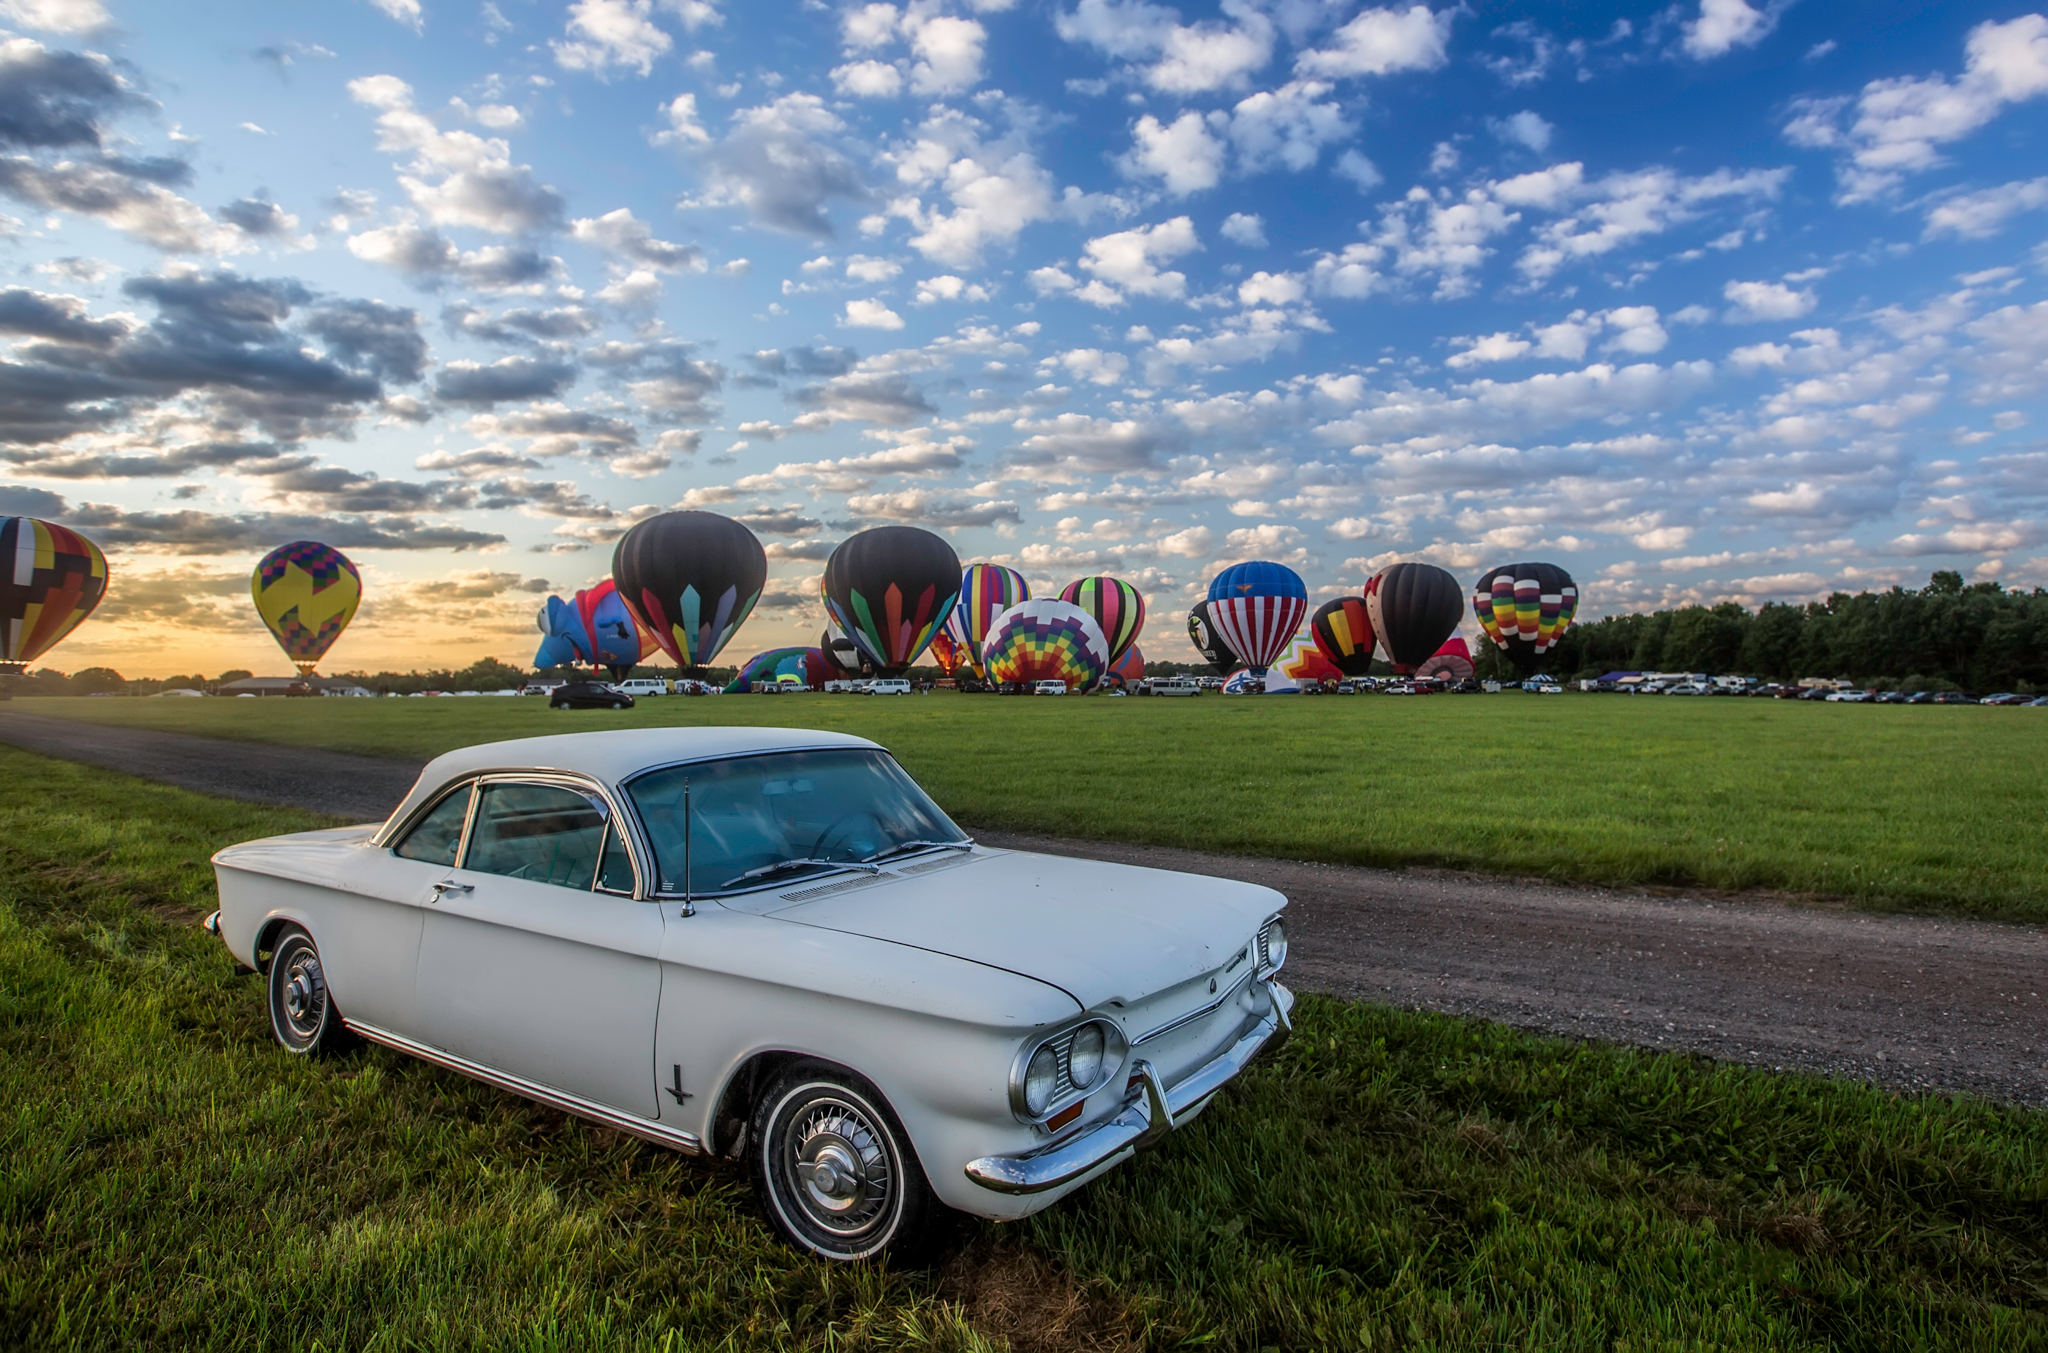 Choose-your-ride-Balloons-Jason-Gambone-